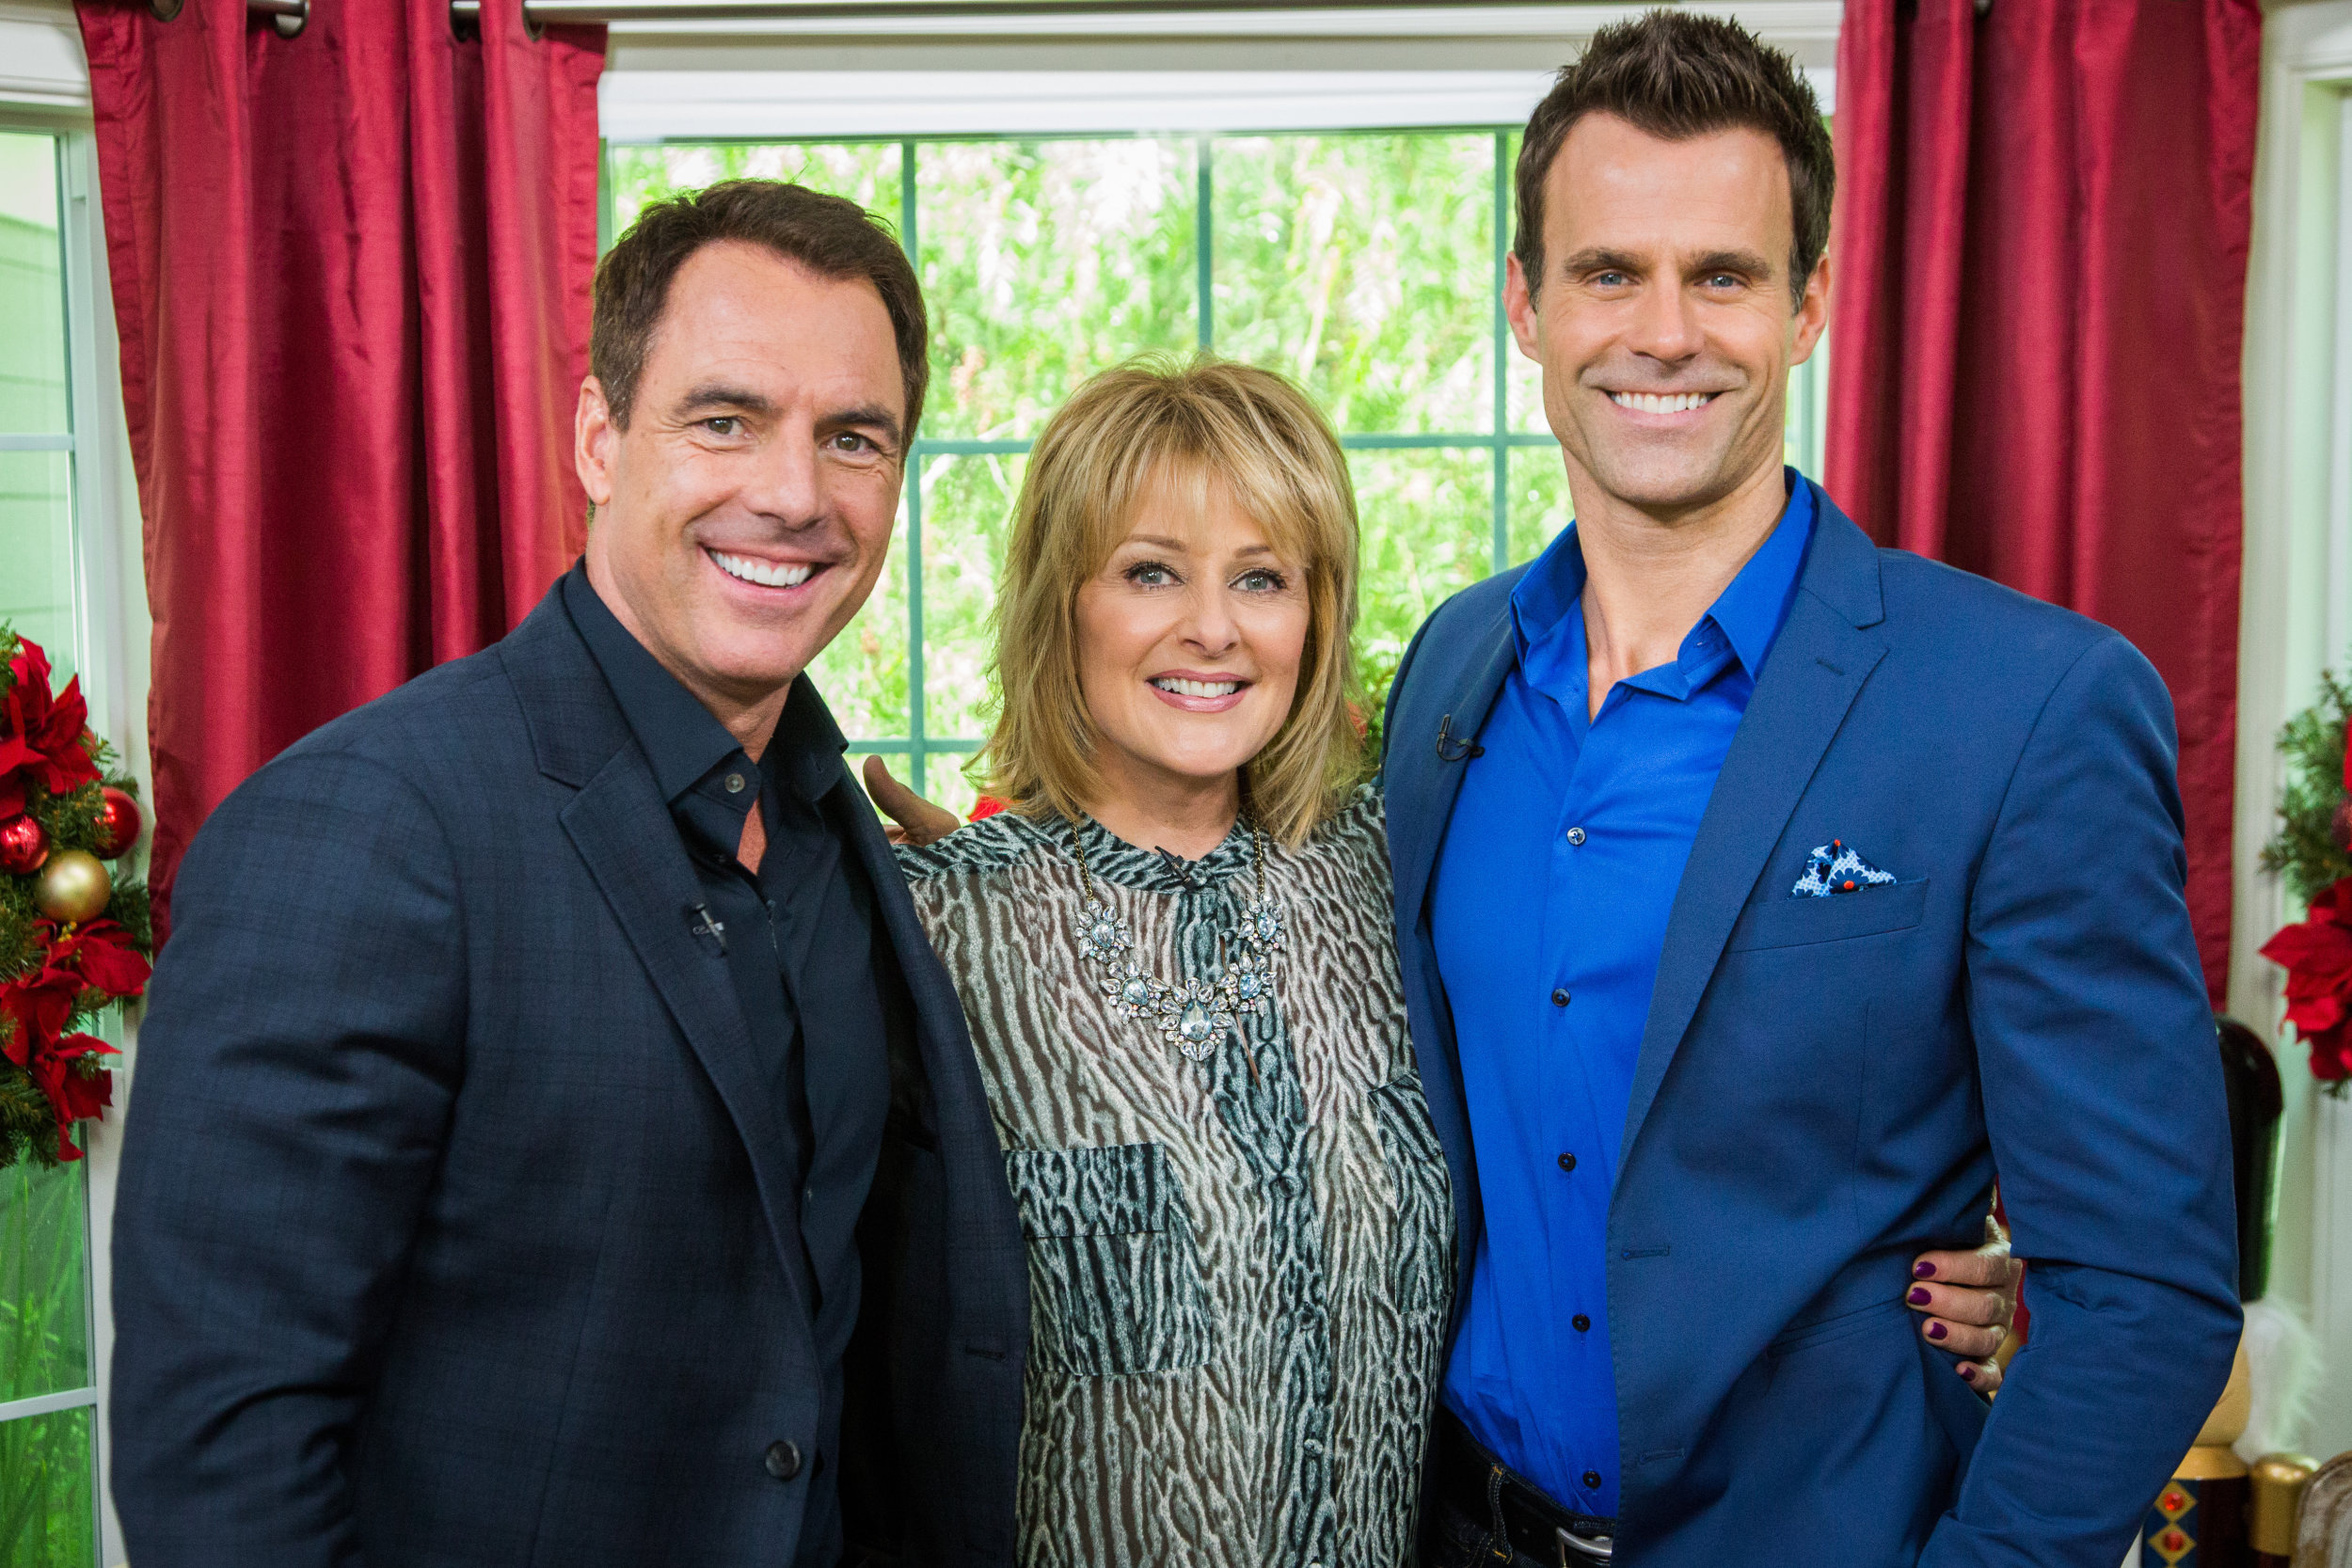 Hollywood steals home and family - Home Family Season 3